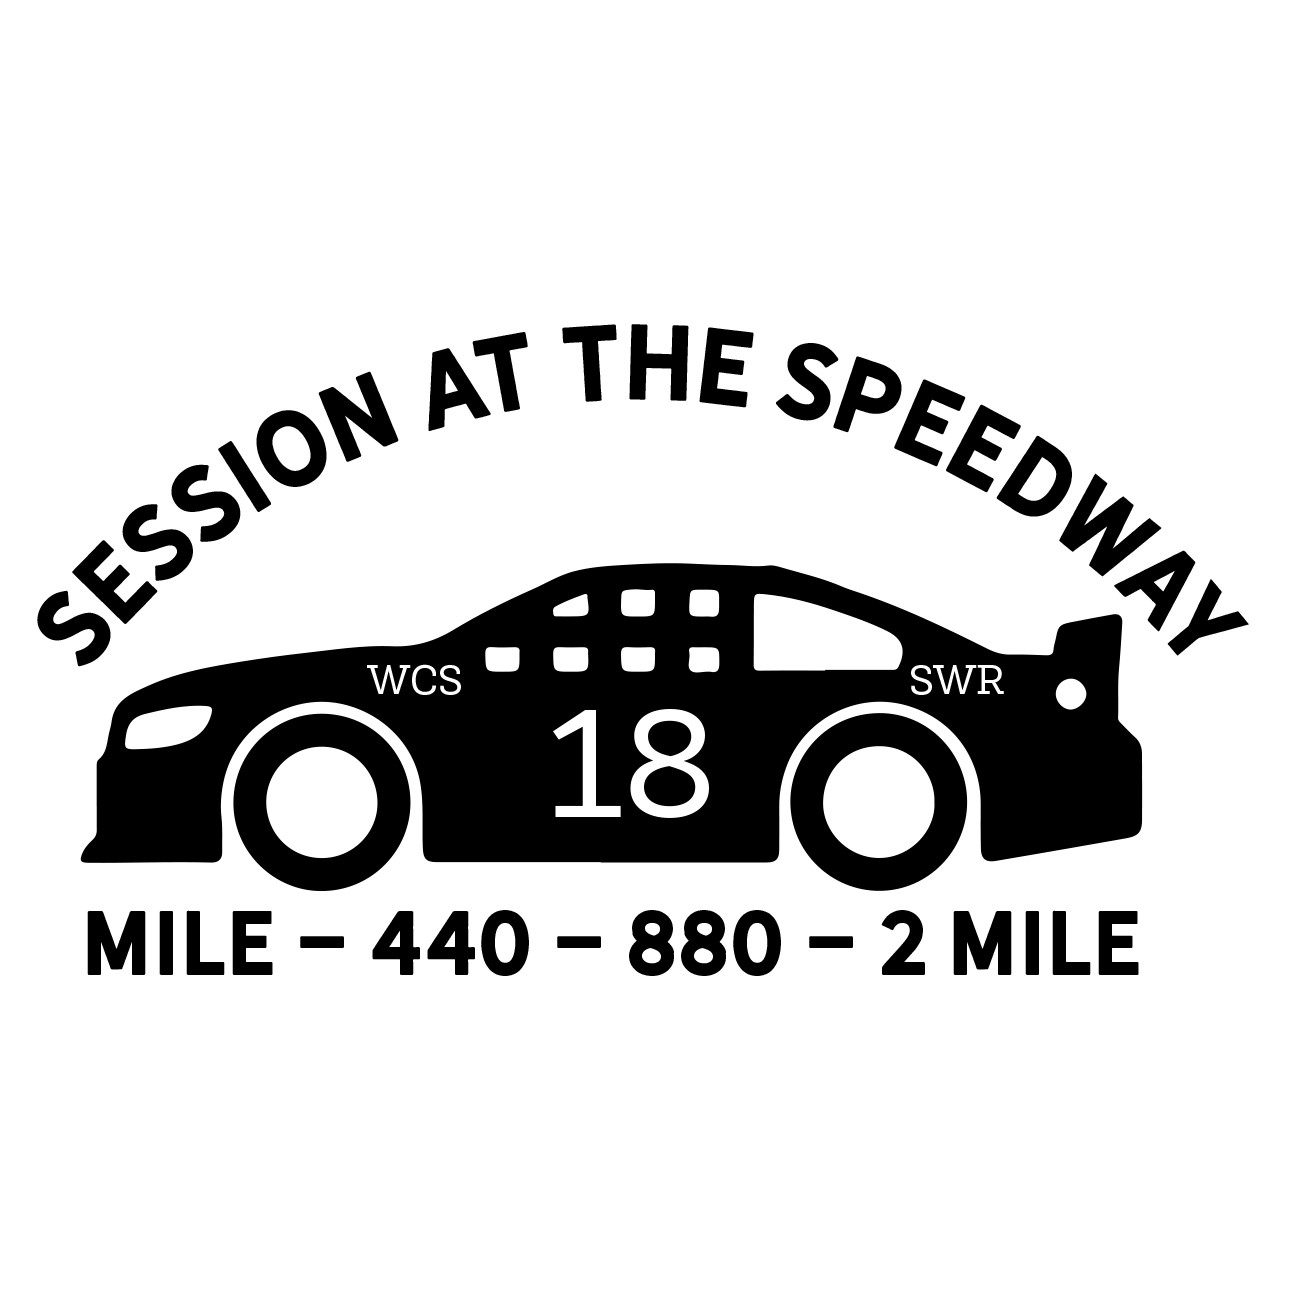 Session at the Speedway